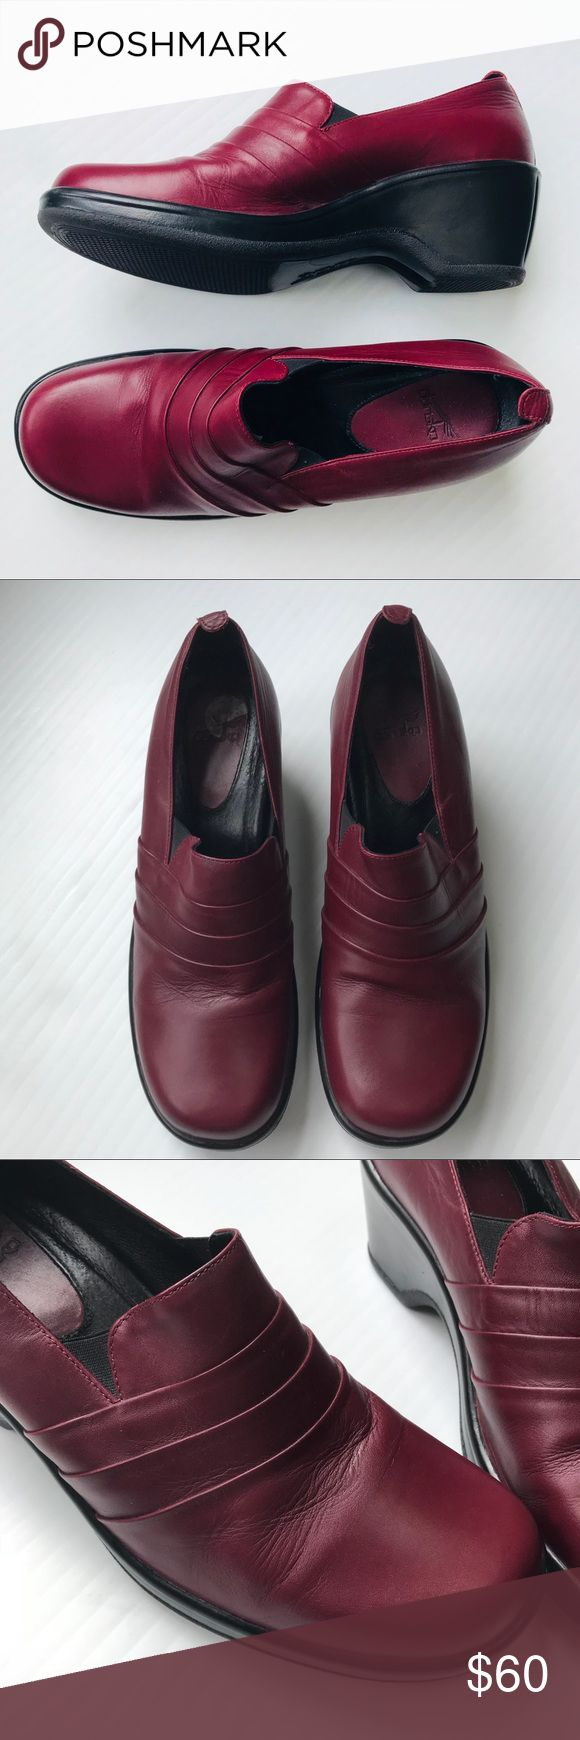 NWOT Danskos Cherry Red Loafers Never worn except to try on! This is Dansko's newer model that is less of a clog and more of a loafer. Still gives you that amazing ergonomic design that will envelope your feet in pure comfort. Dark cherry red color with a mary jane ribbing across the top. No scuffs, just the slight creases across the front toes from being tried on. Size 41 UK or 11 US. I am a size 10 and can wear these easily too. Dansko Shoes Flats & Loafers